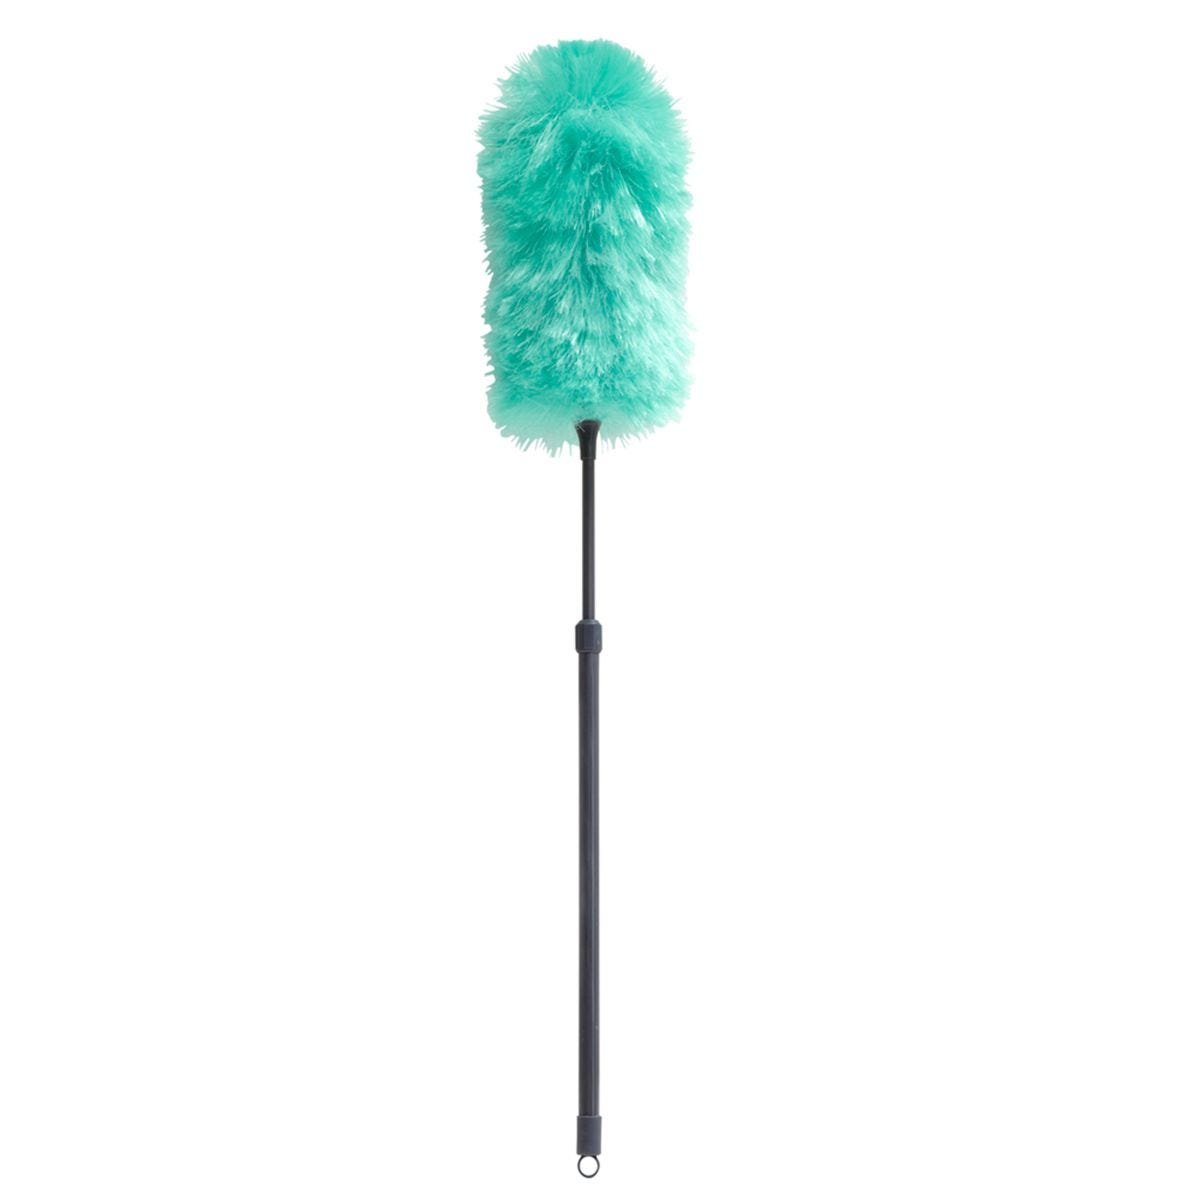 JVL Synthetic Static Duster with Extendable Pole Turquoise/Grey